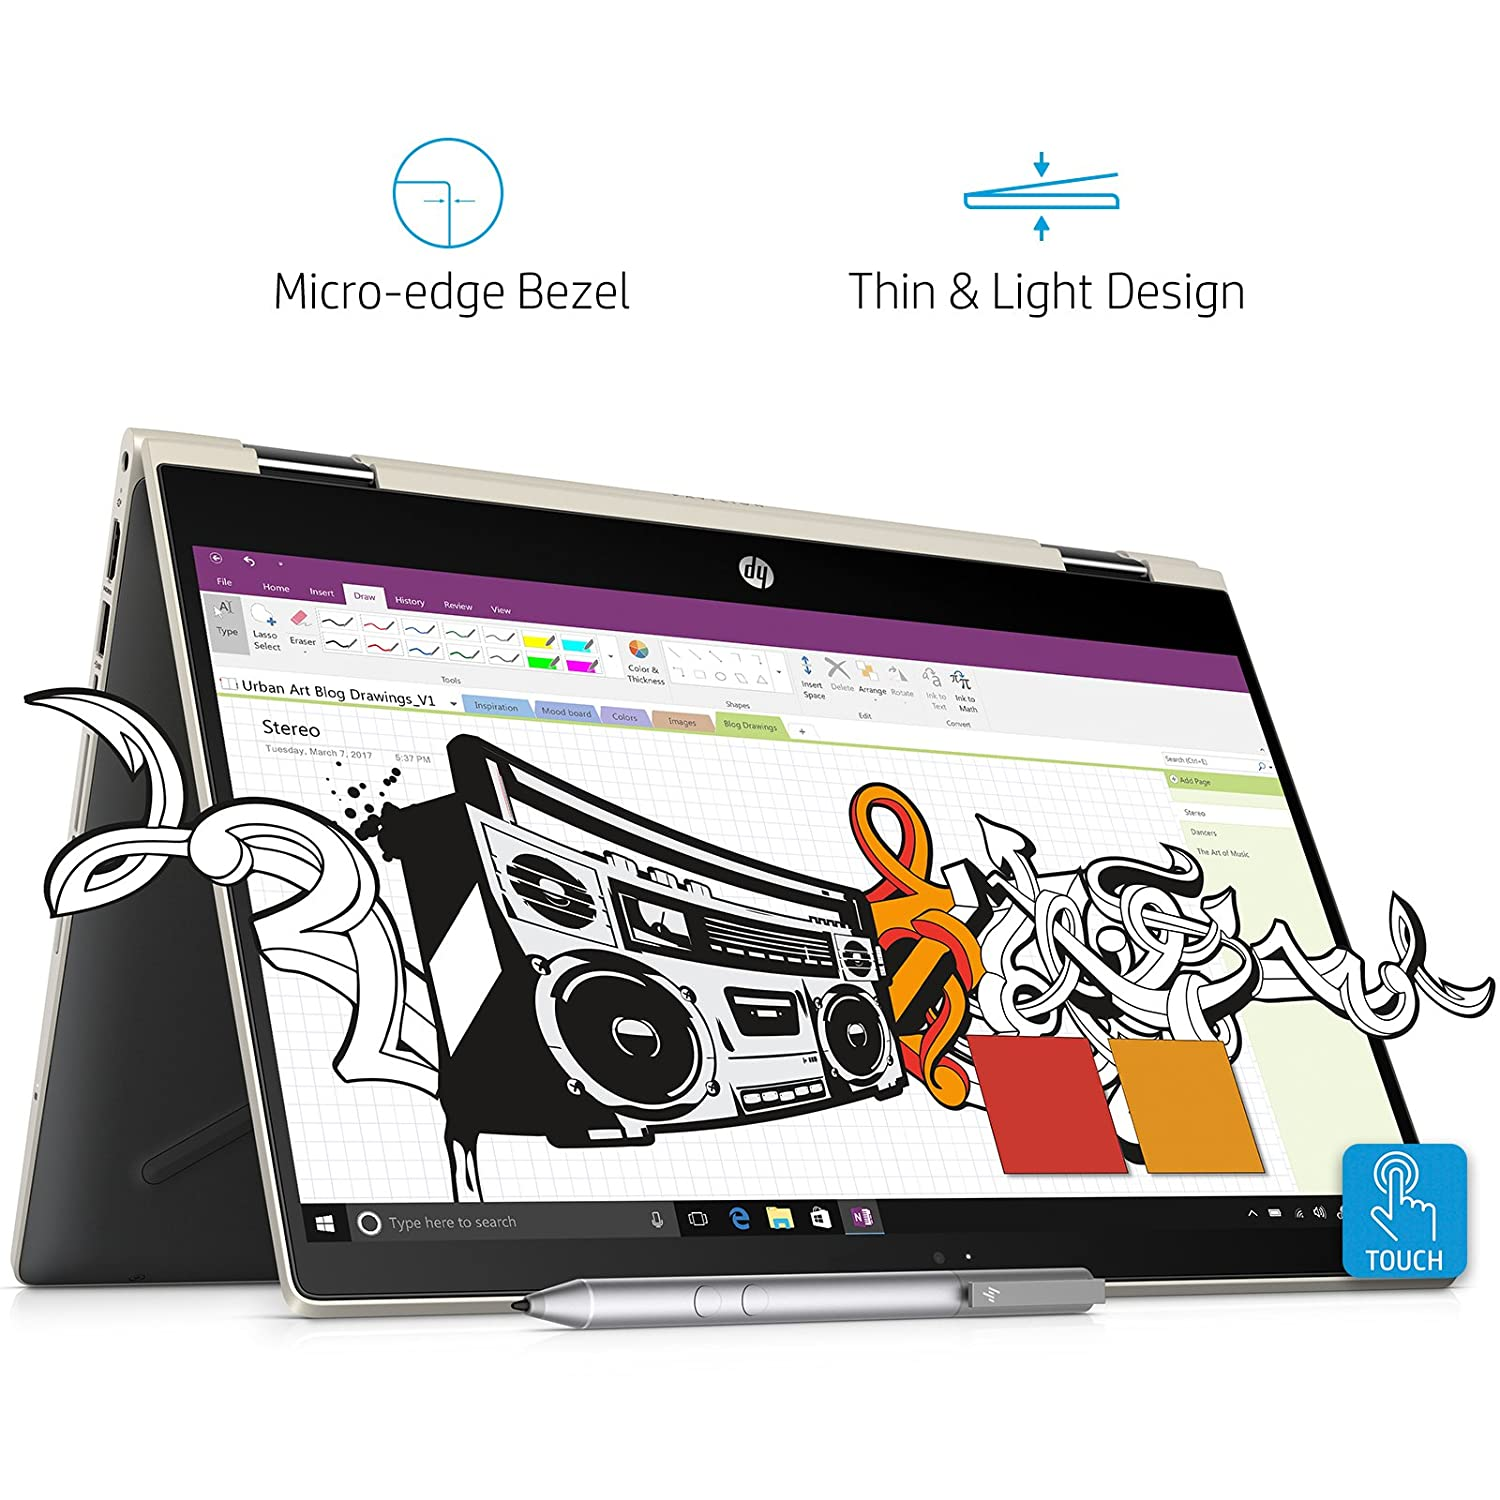 Buy HP Pavilion x360 Convertible 14 cd0078TU 14 inch FHD Slim Laptop with Pen 8th Gen Intel Core i3 8130U 256 GB SSD 4GB RAM Windows 10 Home Microsoft